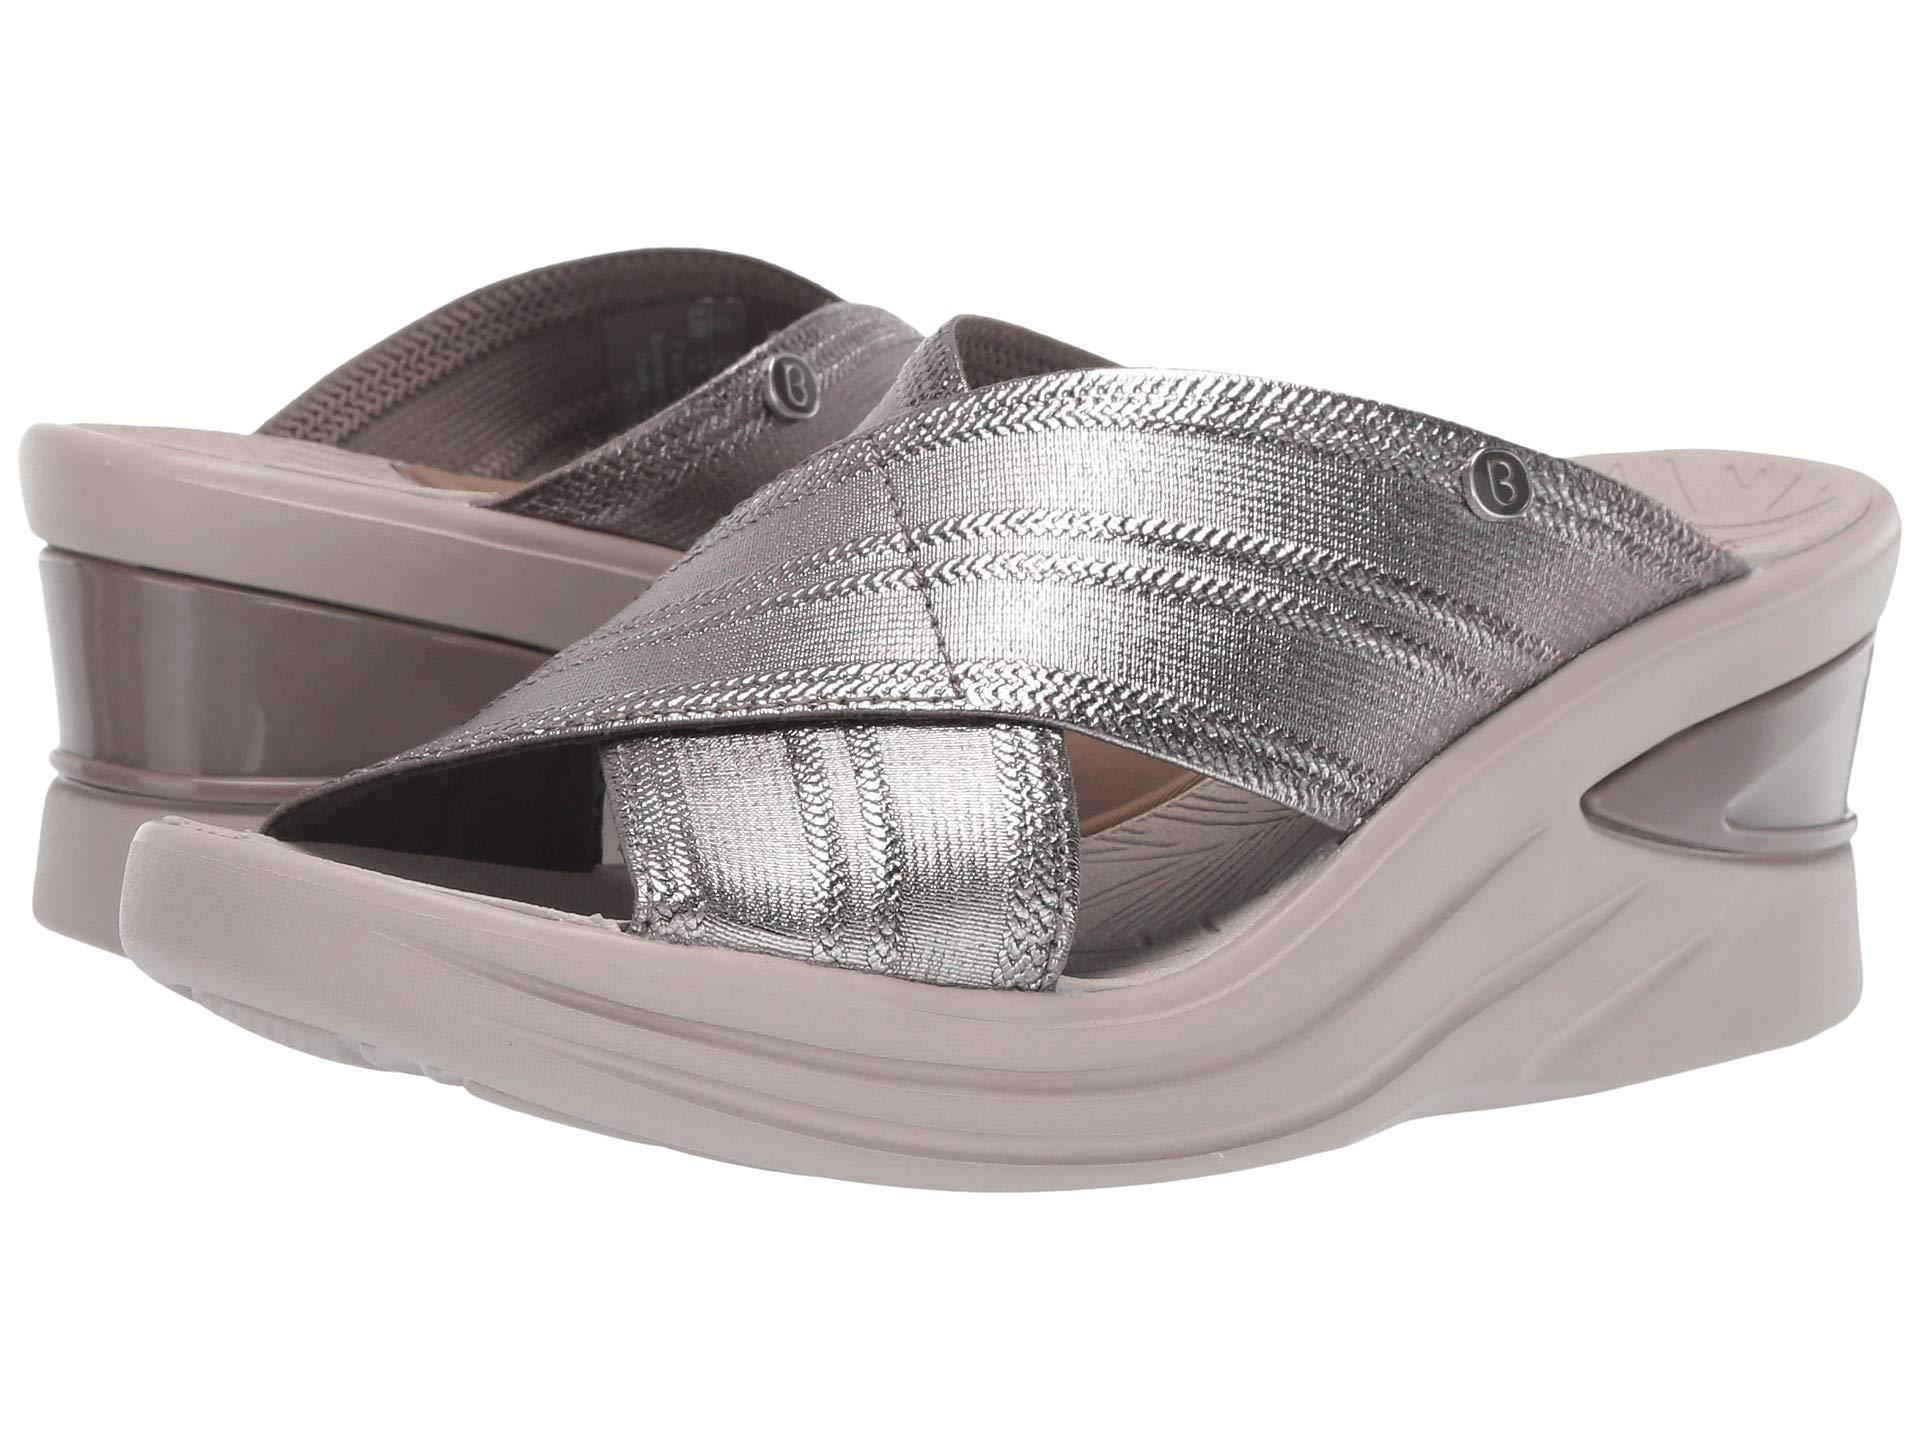 36b345d4a242 Lyst - Bzees Vista (charcoal Metallic Fabric) Women s Sandals in ...